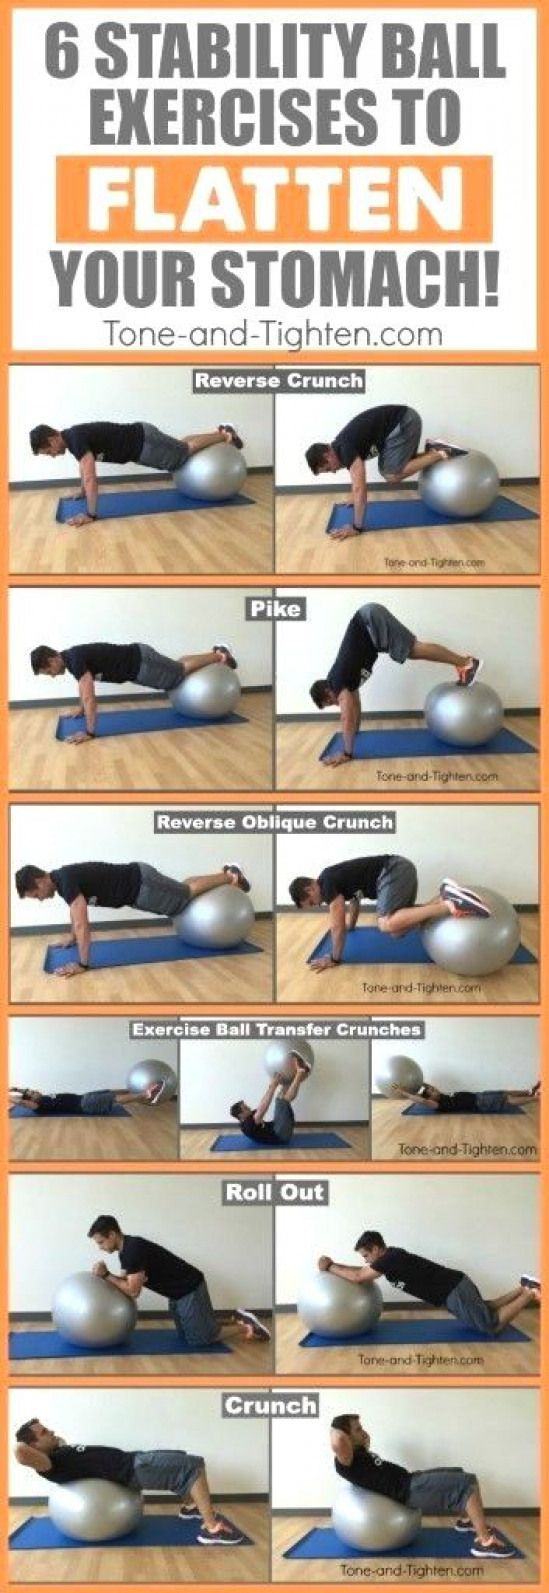 19 fitness Training abs ideas